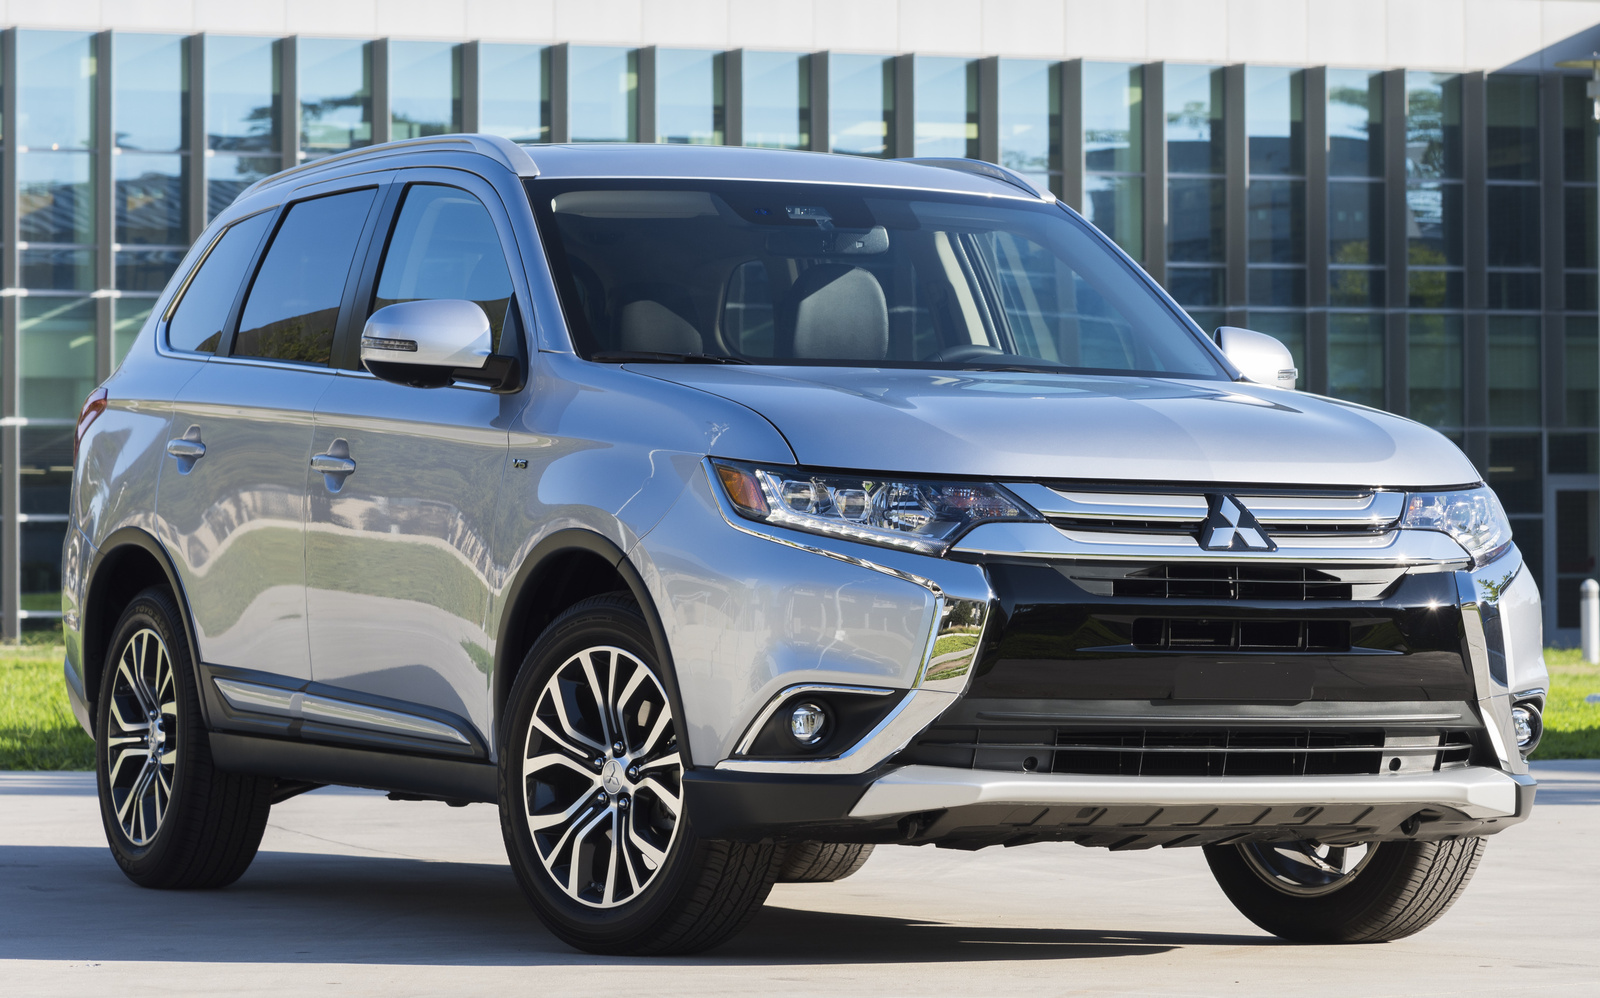 2017 / 2018 Mitsubishi Outlander for Sale in Chicago, IL - CarGurus